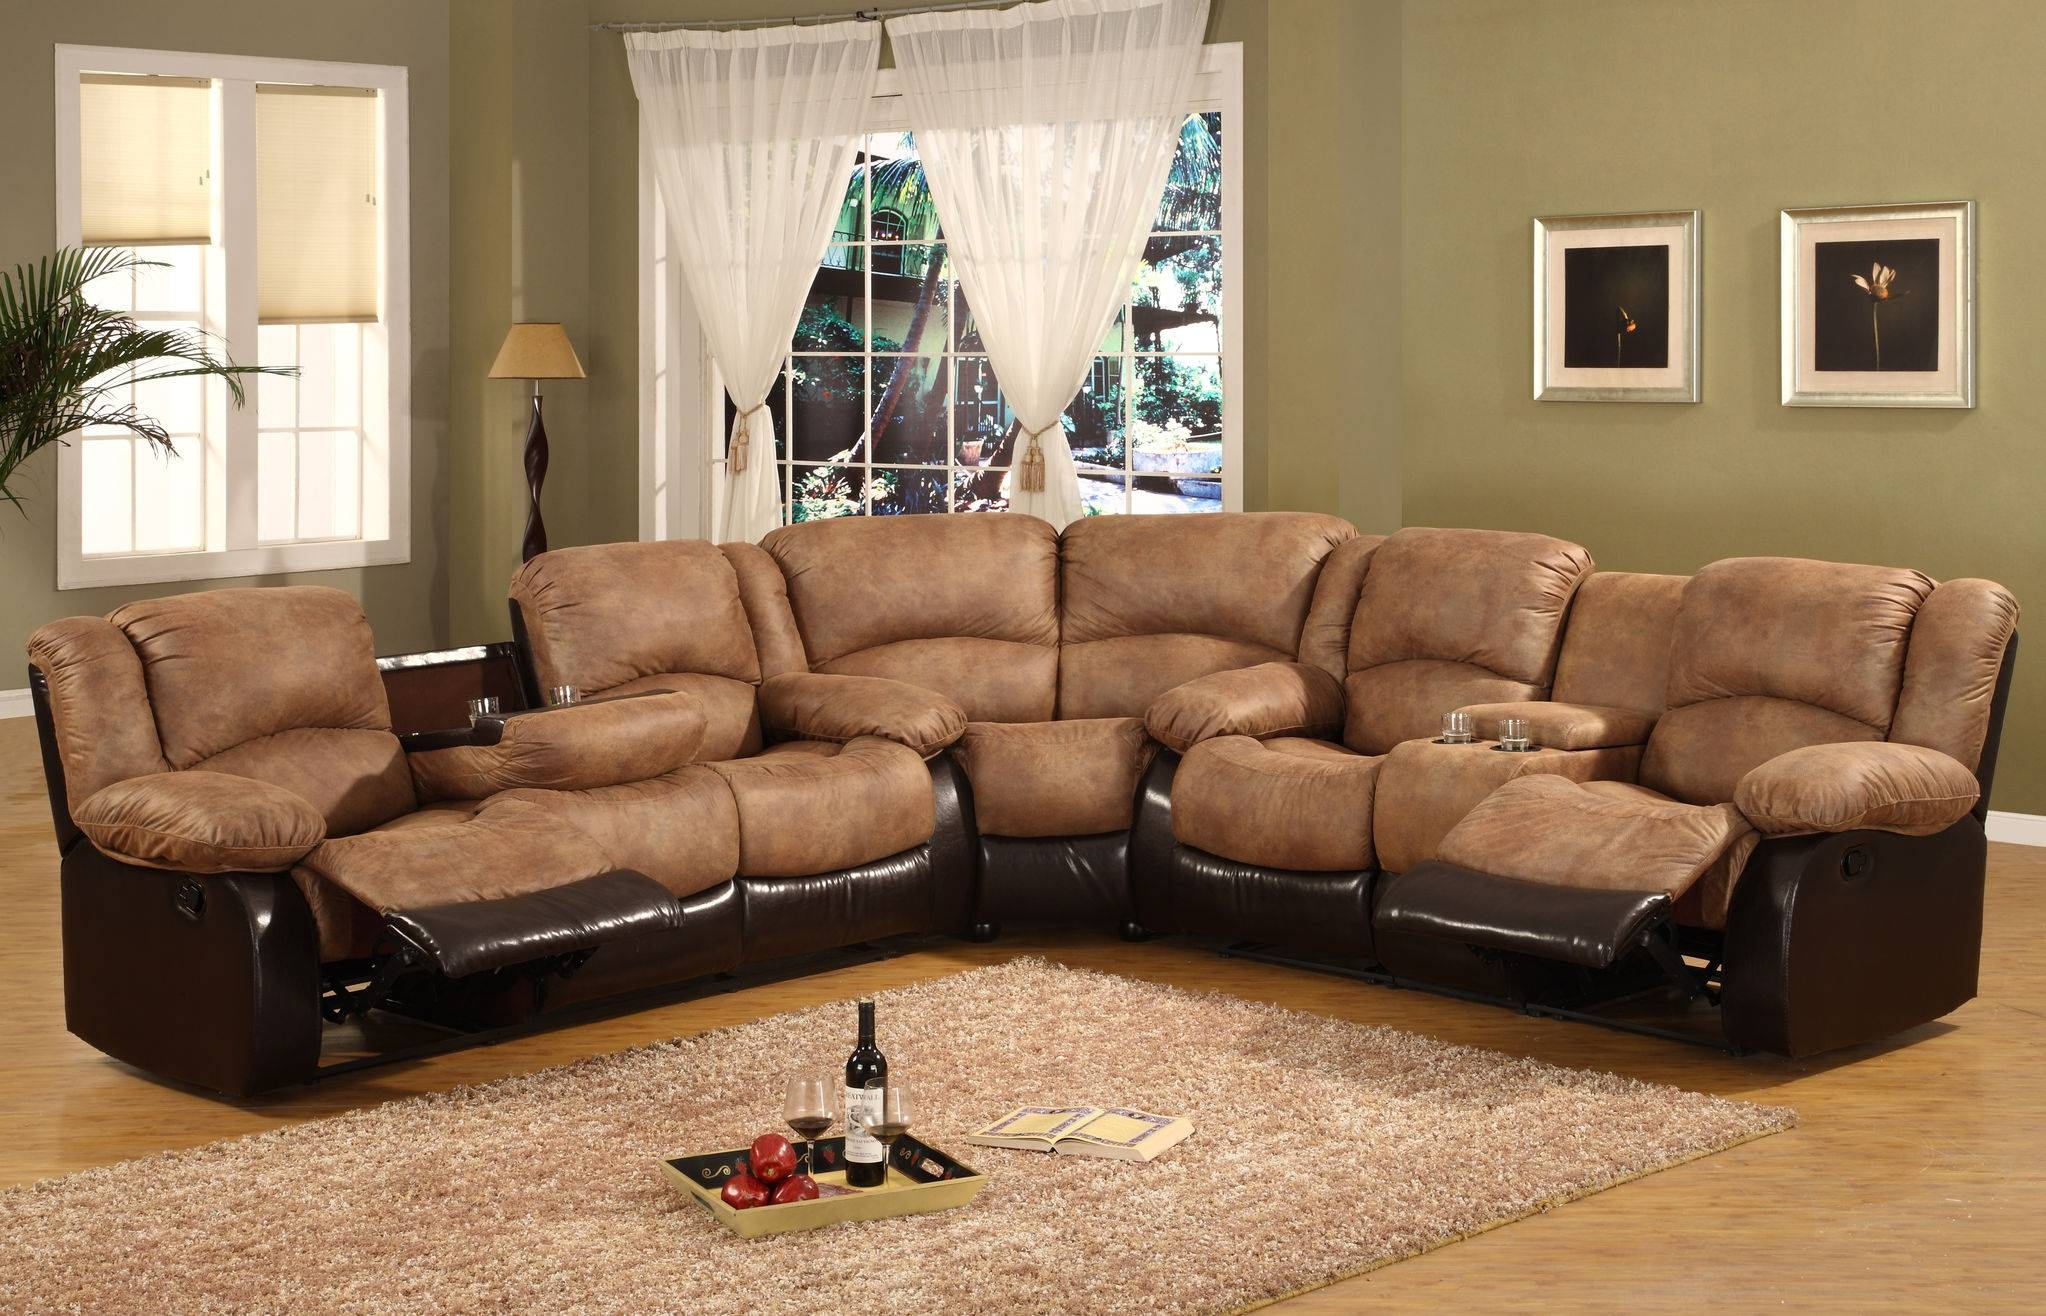 15 s Big Lots Leather Sofas